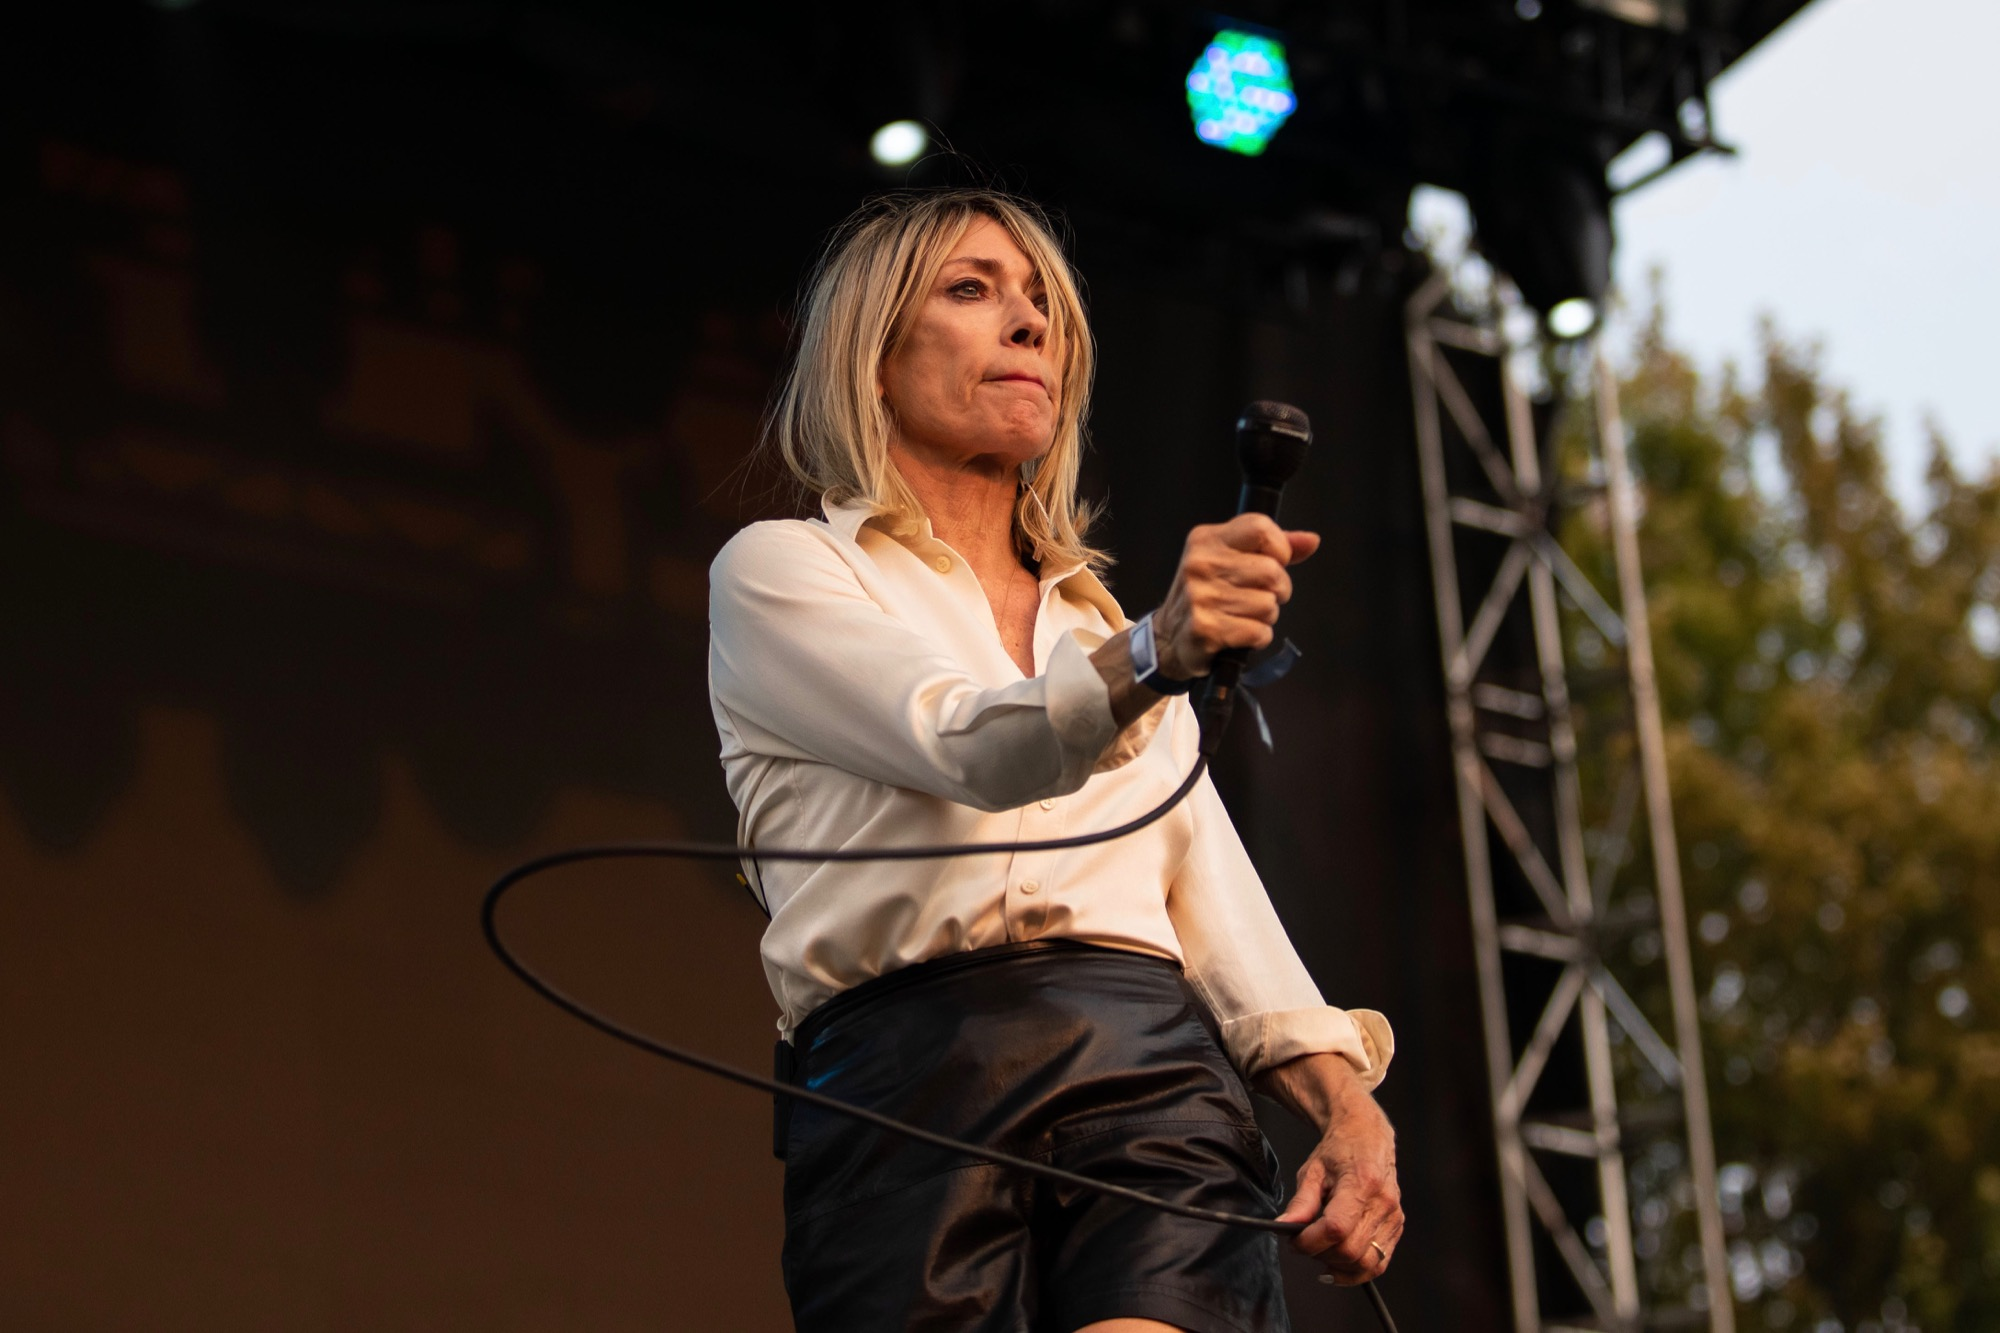 Kim Gordon performs at the Pitchfork Music Festival in Chicago on Sep. 11, 2021.